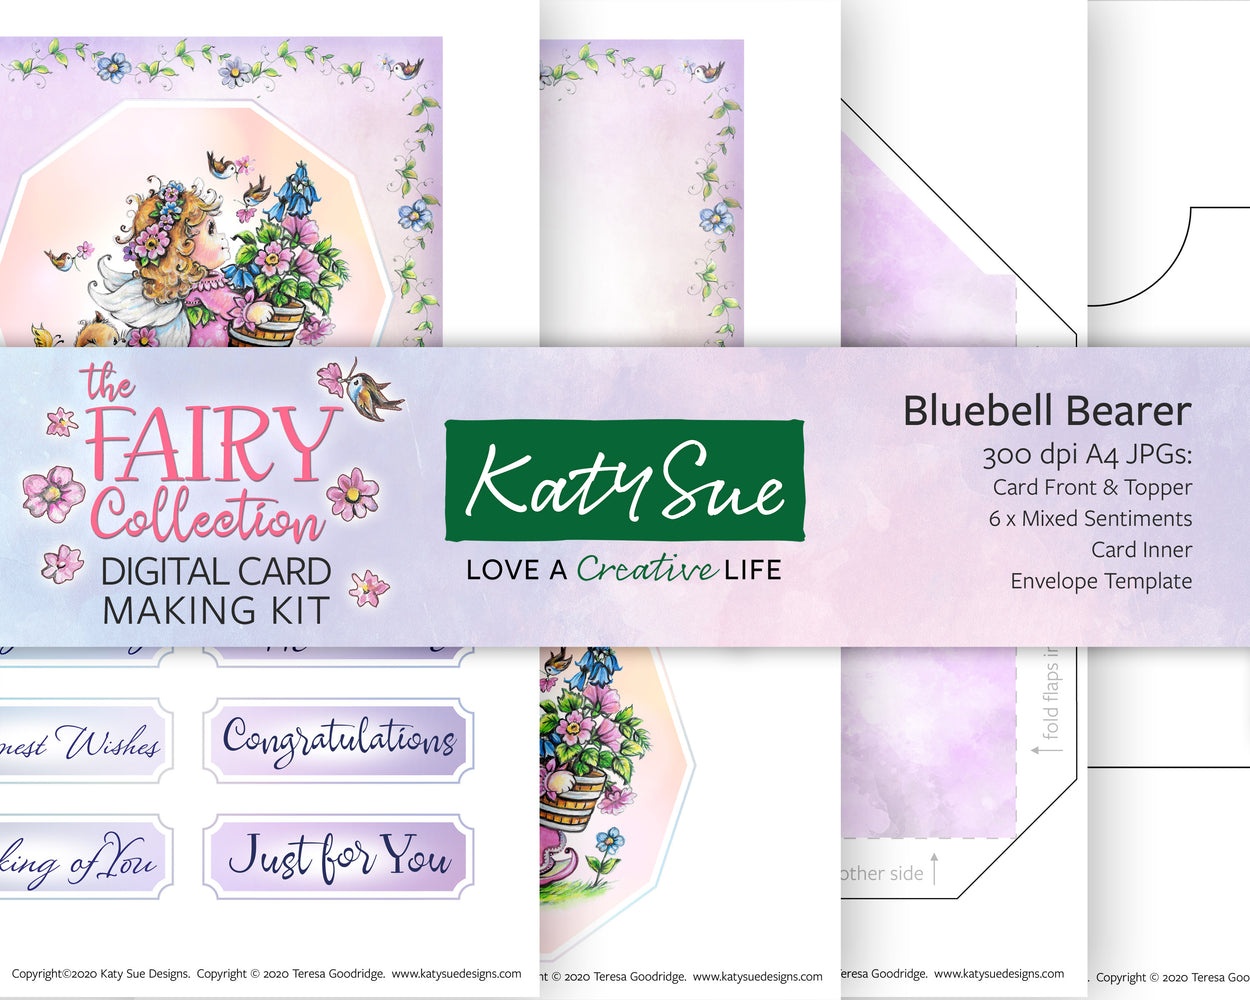 The Fairy Collection Bluebell Bearer | Digital Card Making Kit